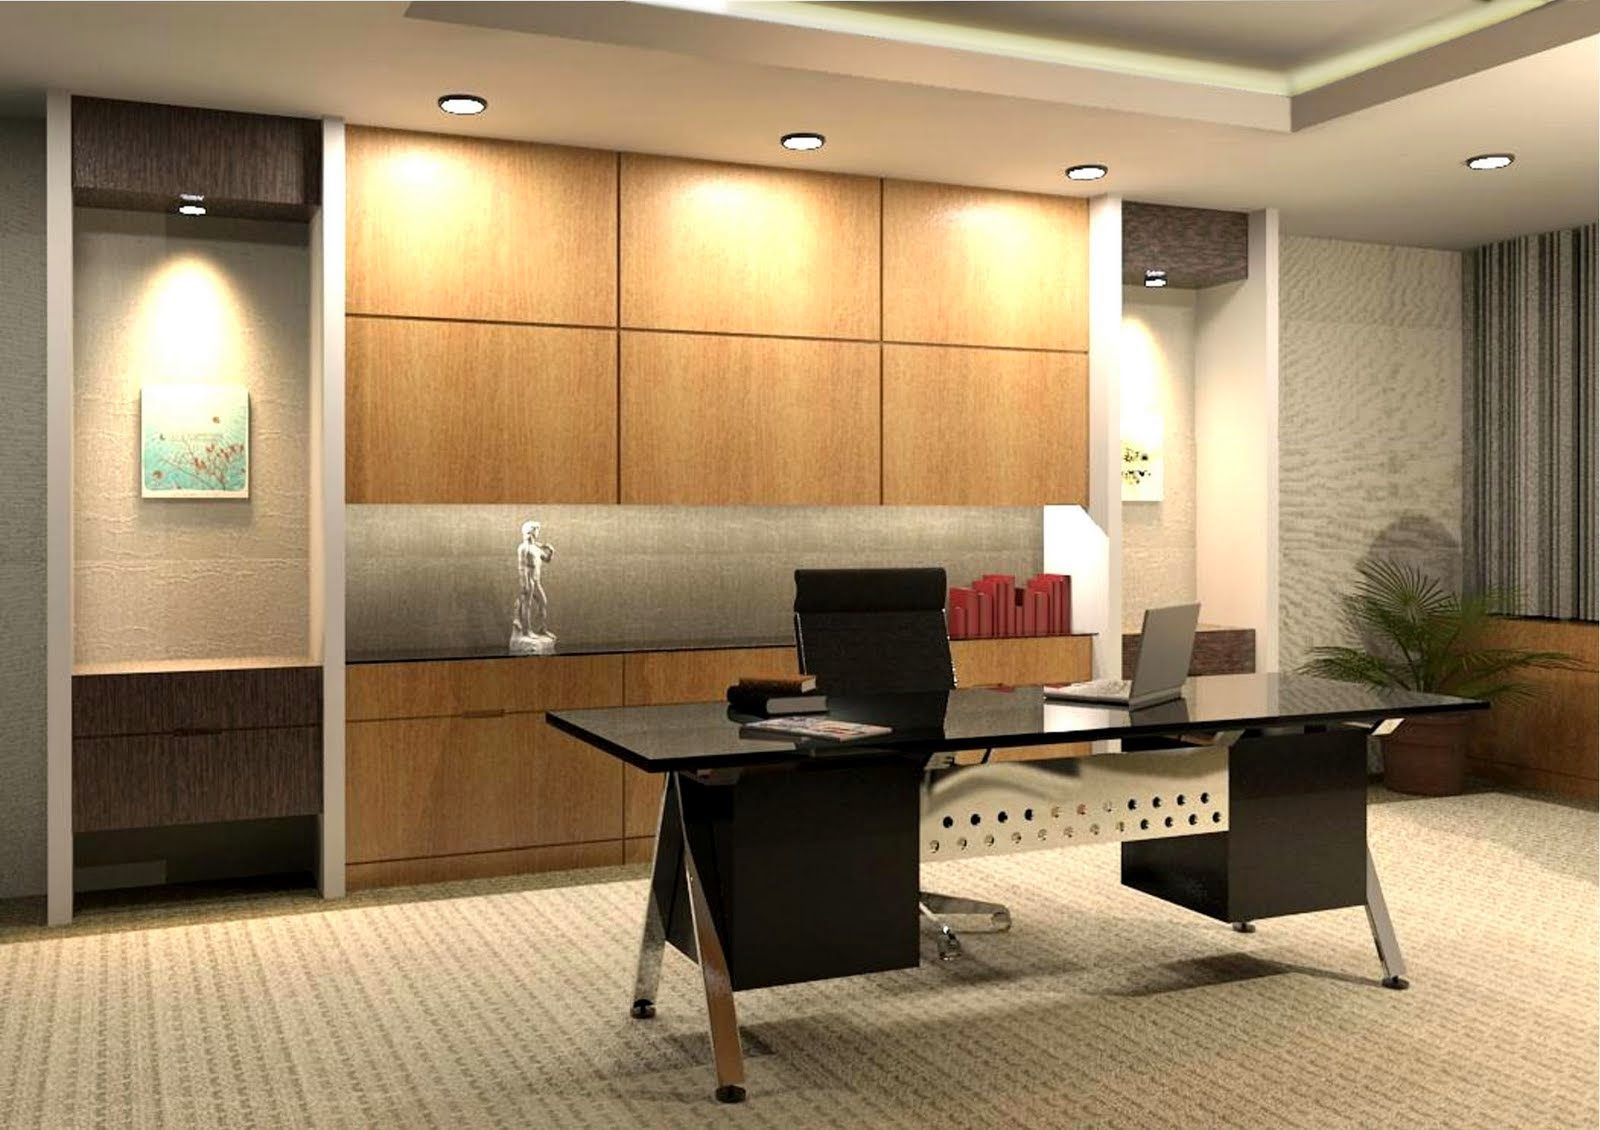 Modern work office decorating ideas 15 inspiring designs Office room decoration ideas